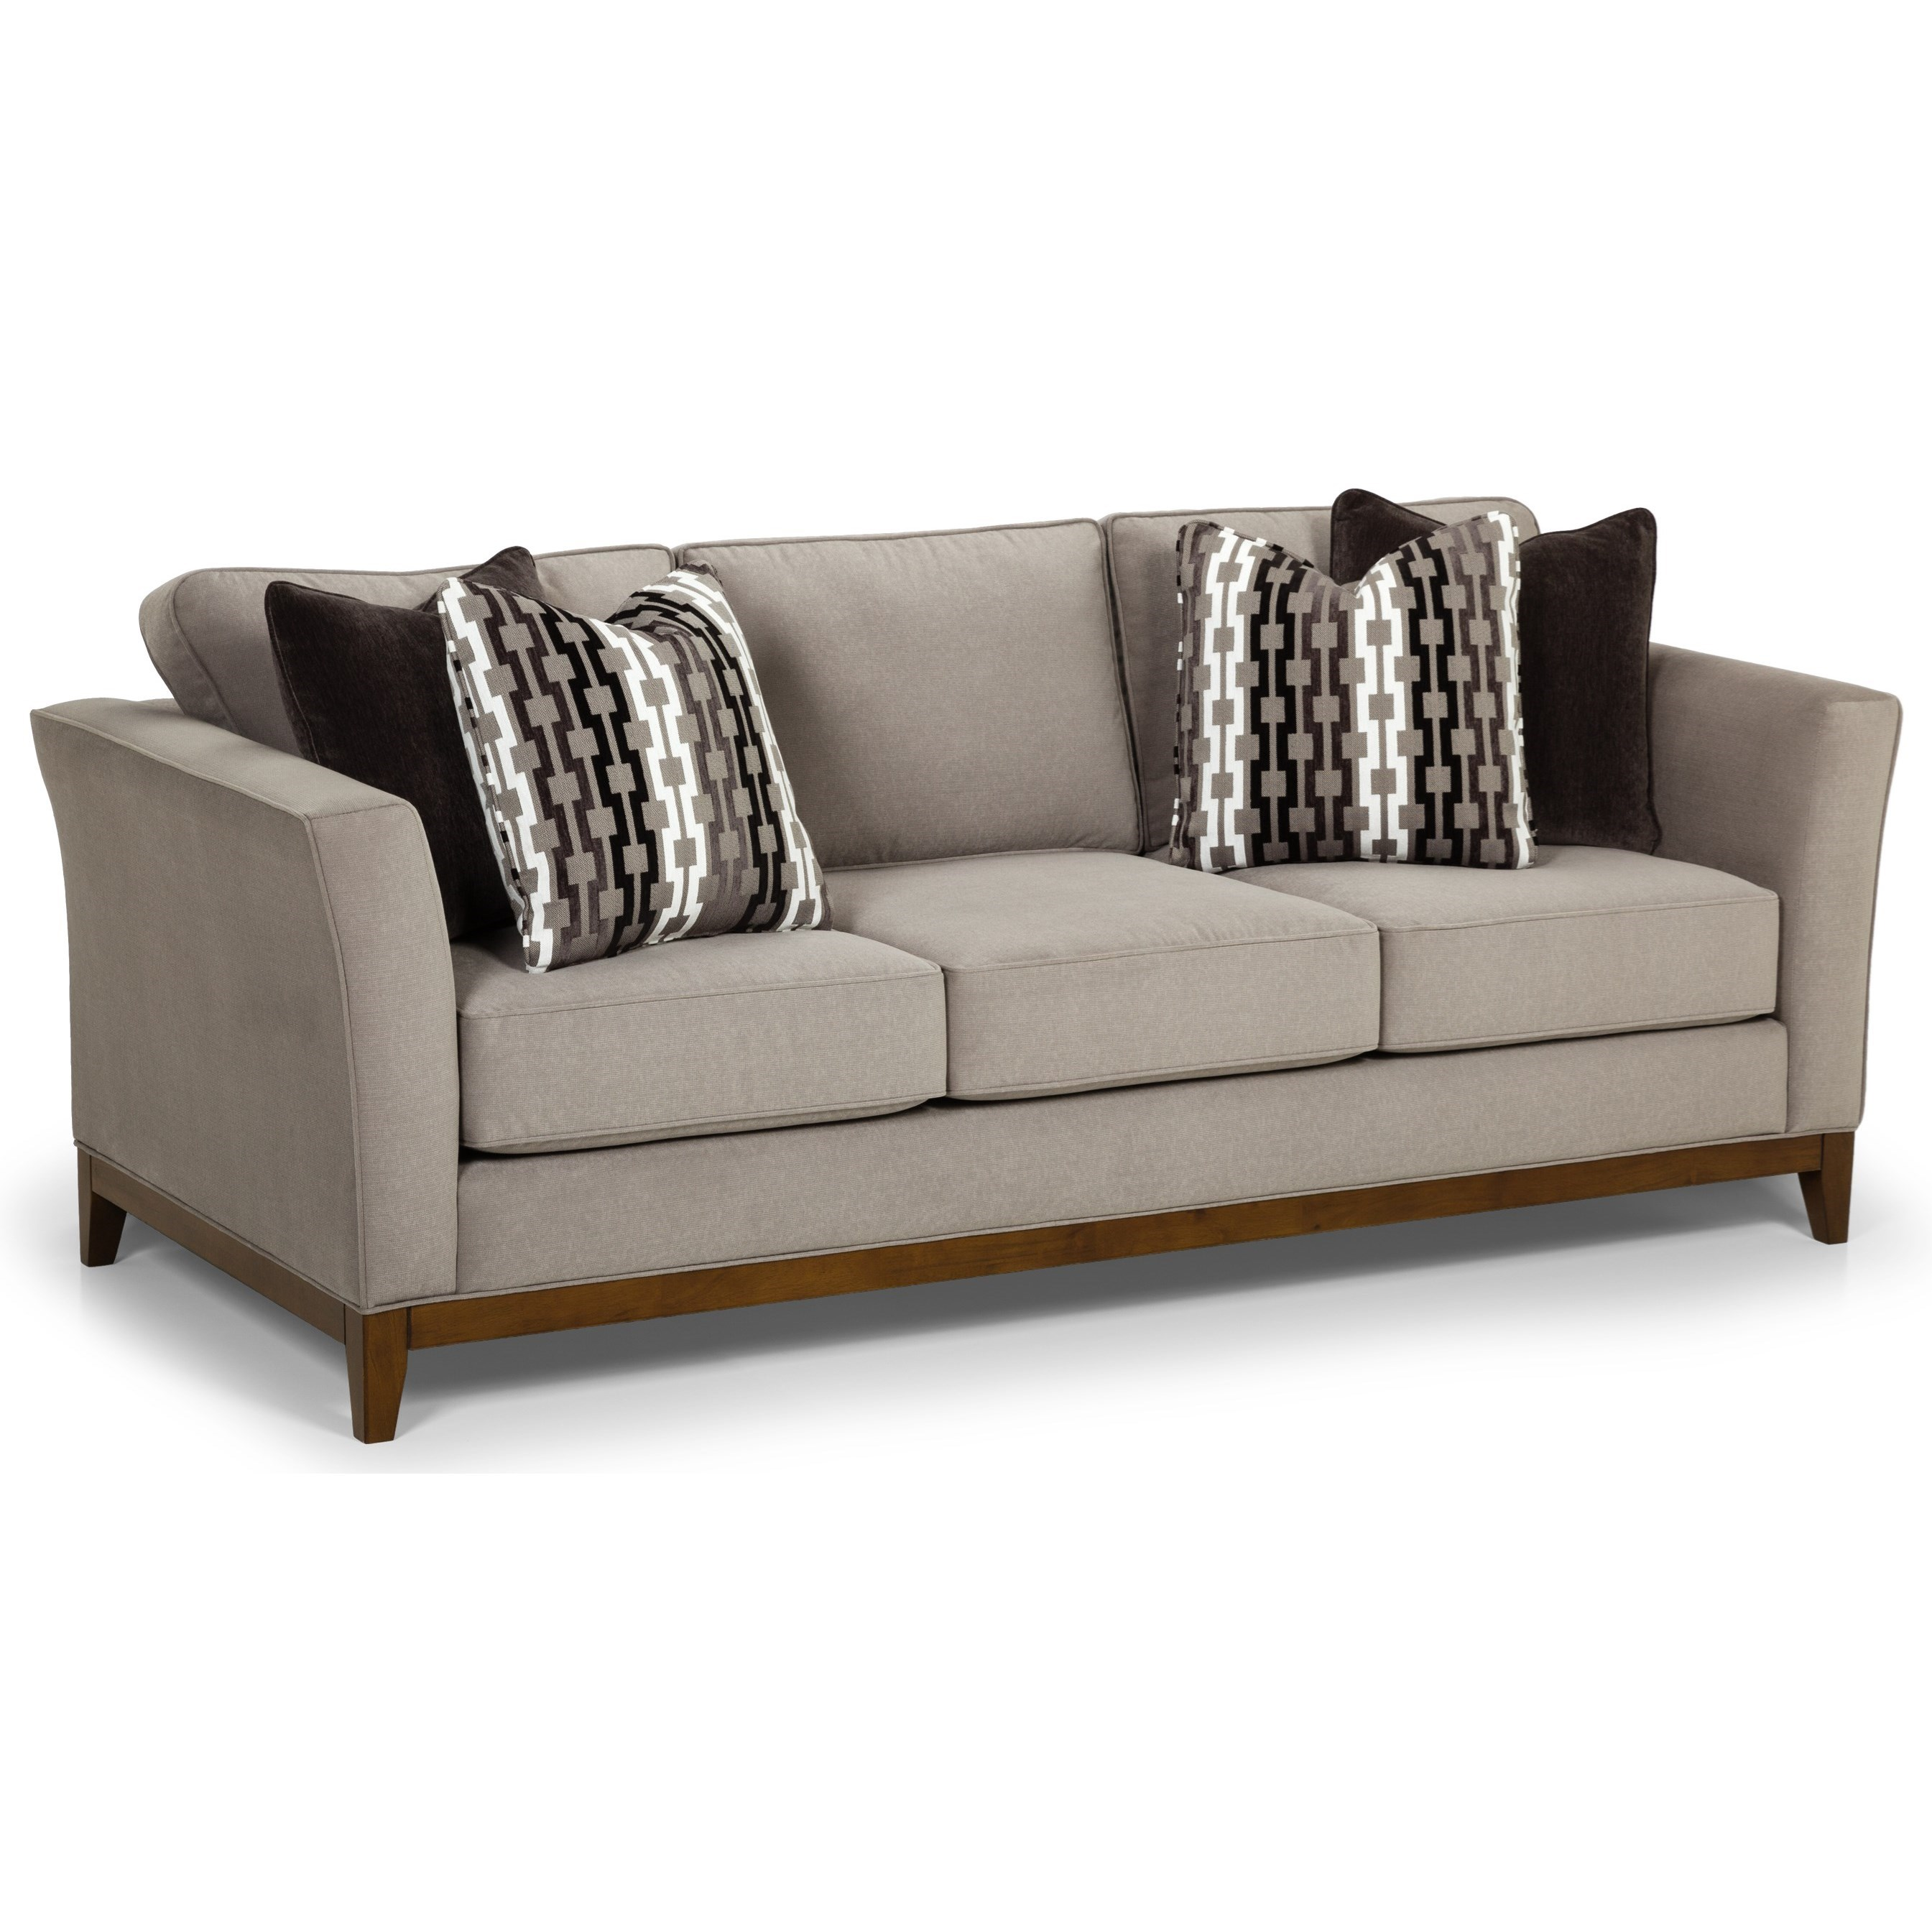 428 Sofa by Stanton at Wilson's Furniture